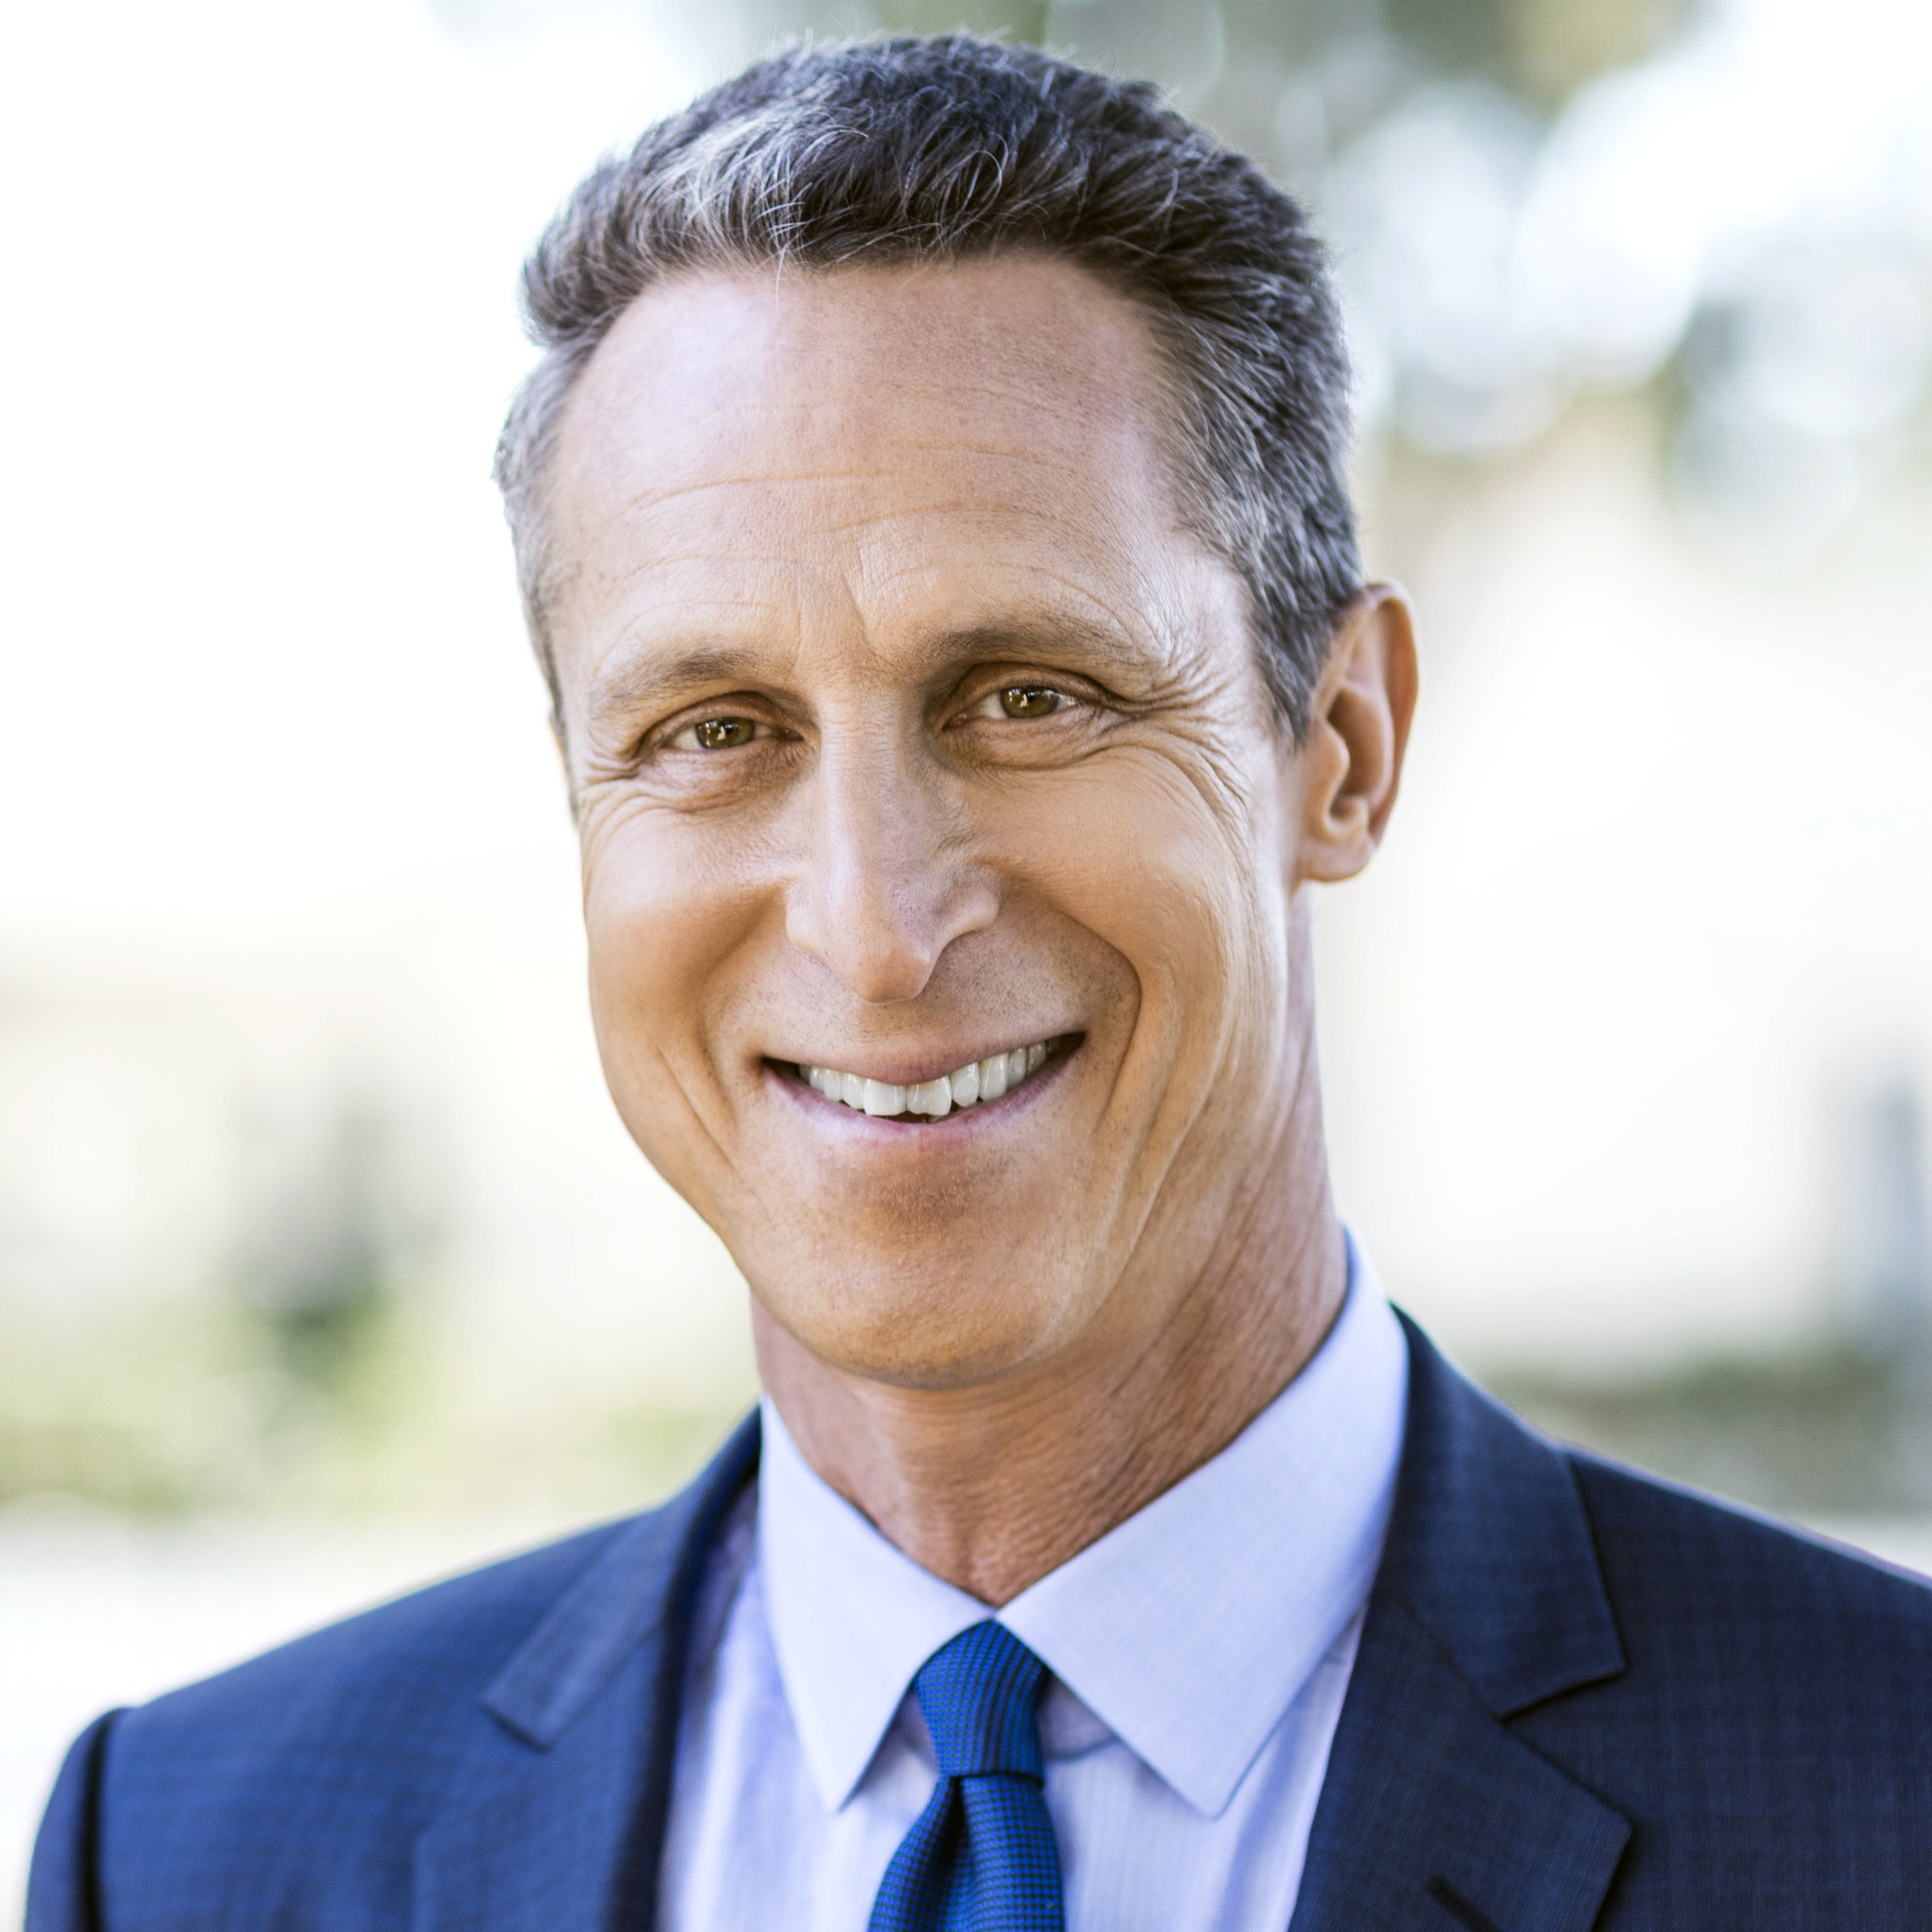 Mark Hyman, MD - Functional medicine leader and Director of the UltraWellness Center